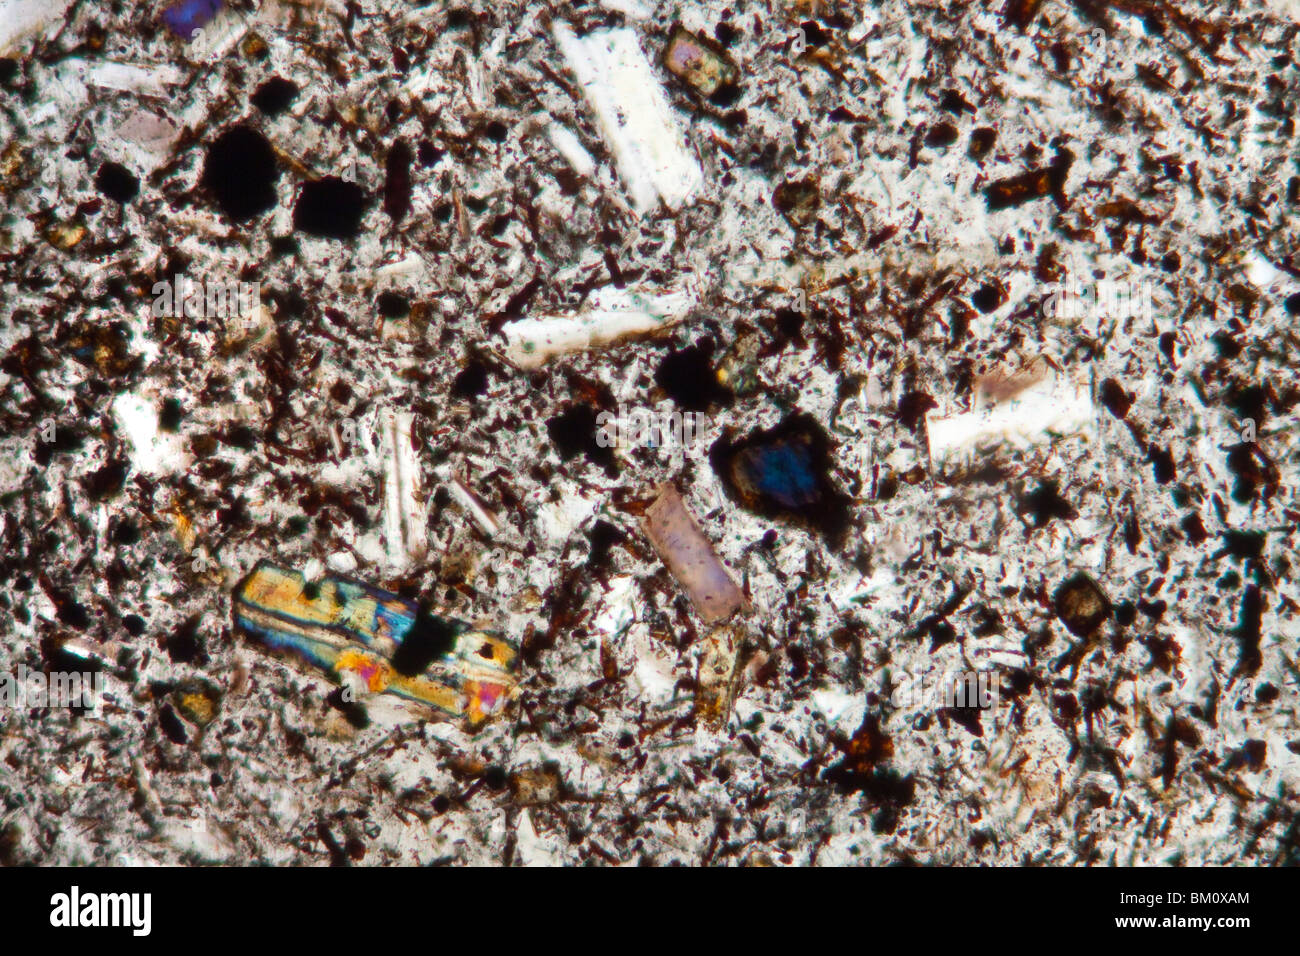 Photomicrograph of Andesite from Montserrat, the Soufriere volcano. - Stock Image